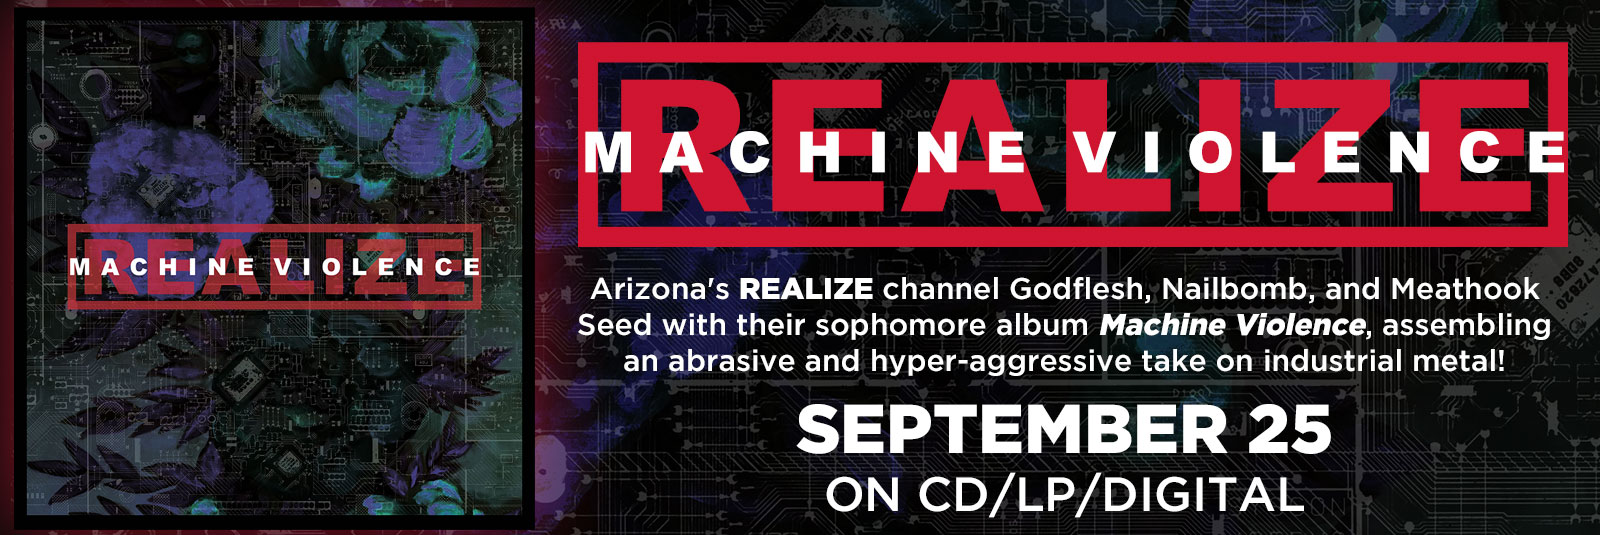 realize-machine-violence-industrial-metal-relapse-september-25